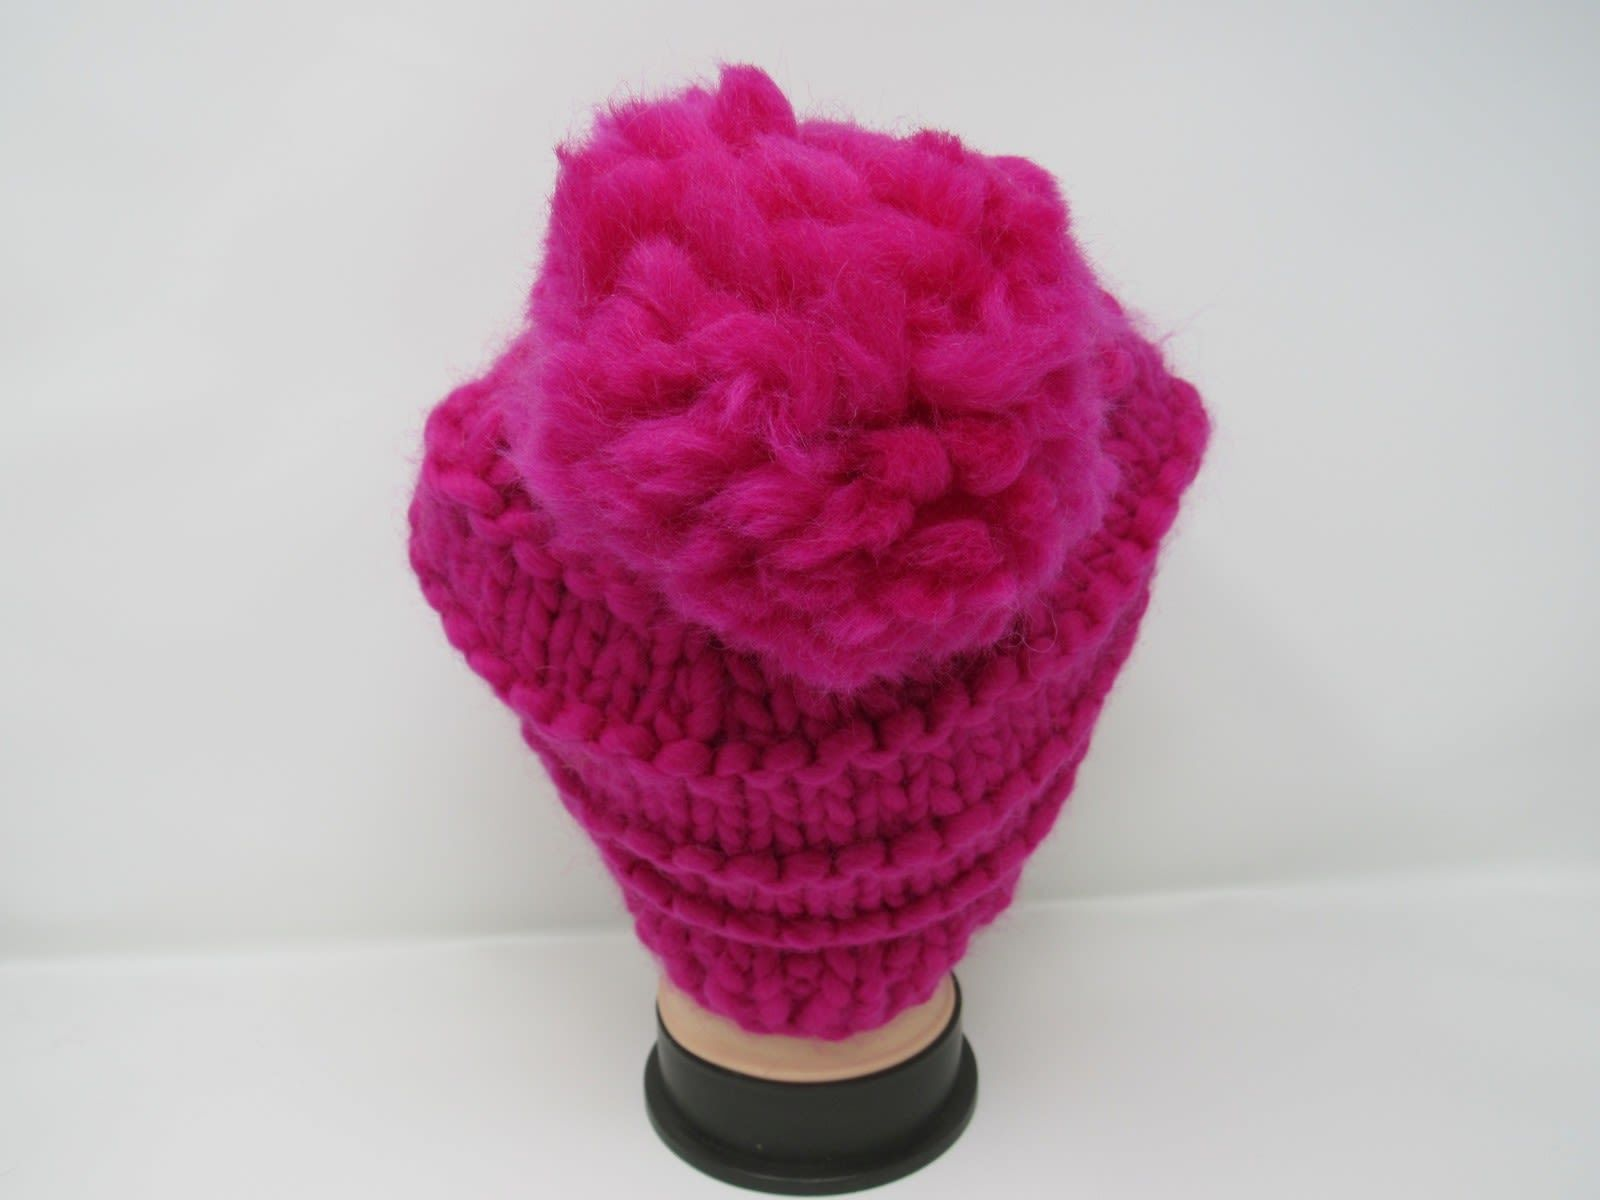 Handcrafted Knitted Hat Beanie Hot Pink Pom Pom 100% Merino Wool Female Adult